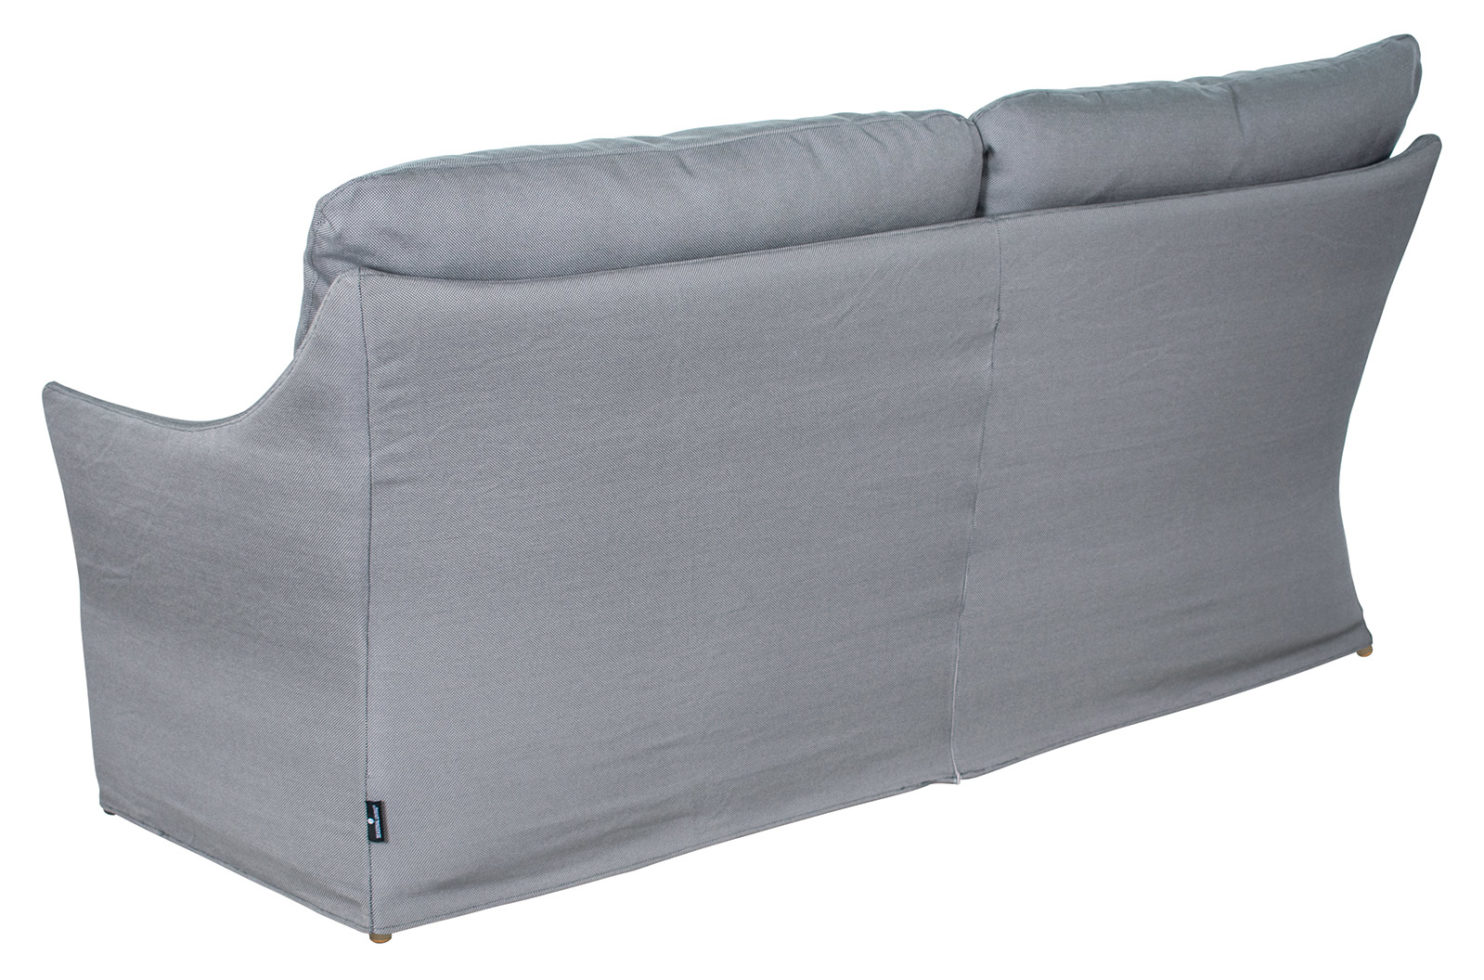 capri sofa 620FT094FC G 1 3Q back